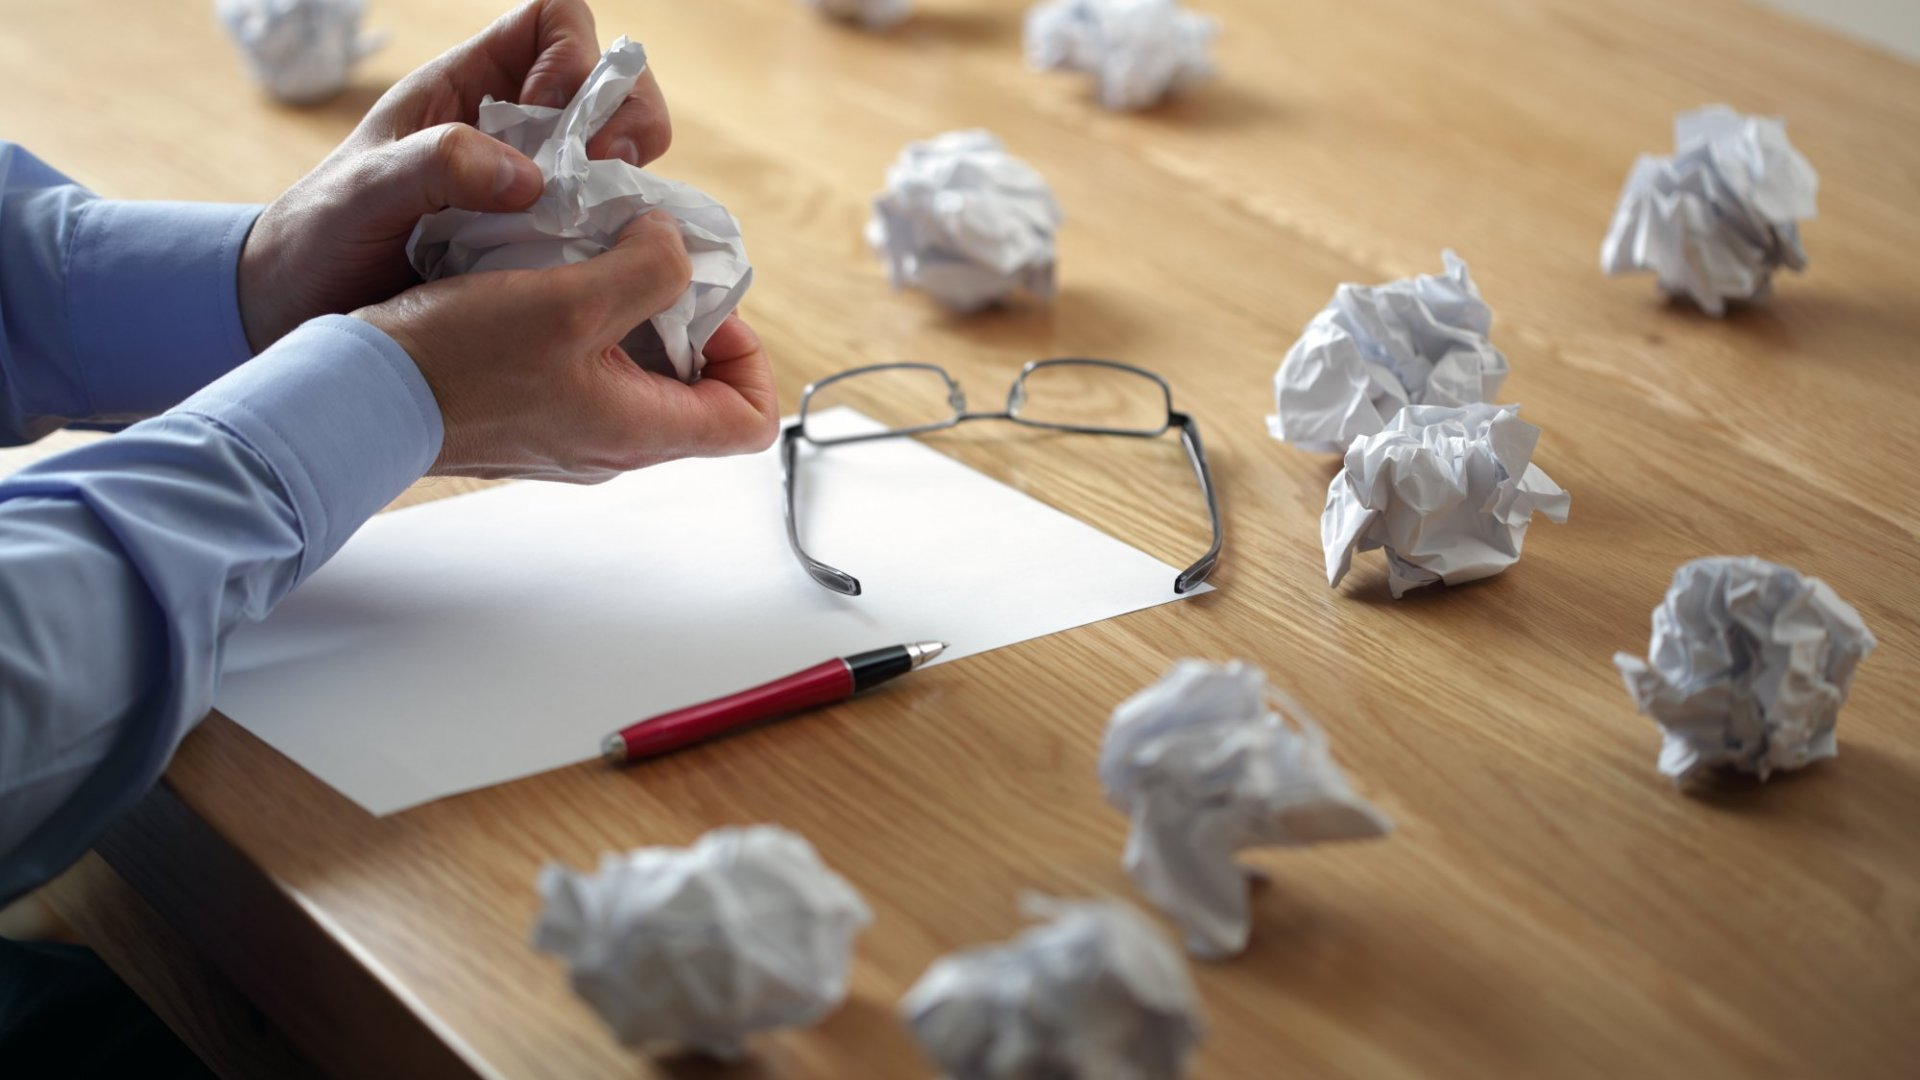 7 Bad Habits of Unoriginal Workplaces